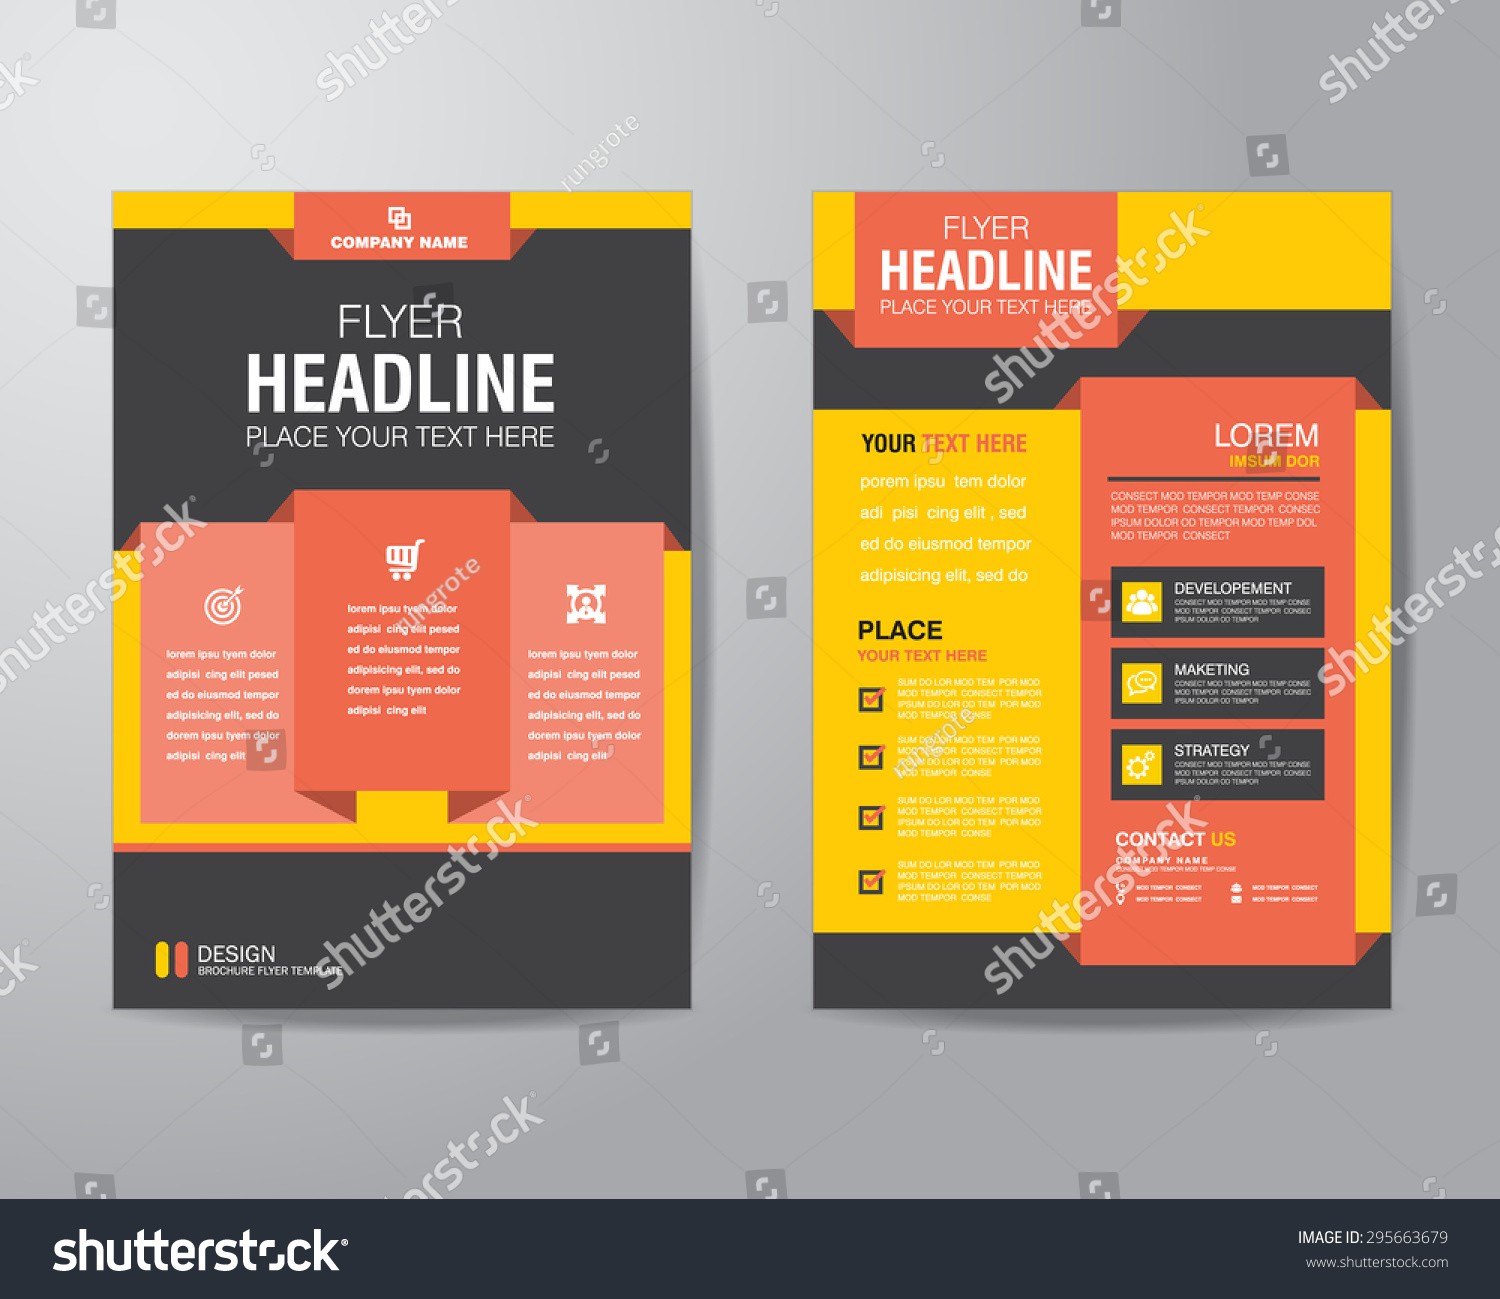 Corporate brochure flyer design layout template stock for Typography brochure design